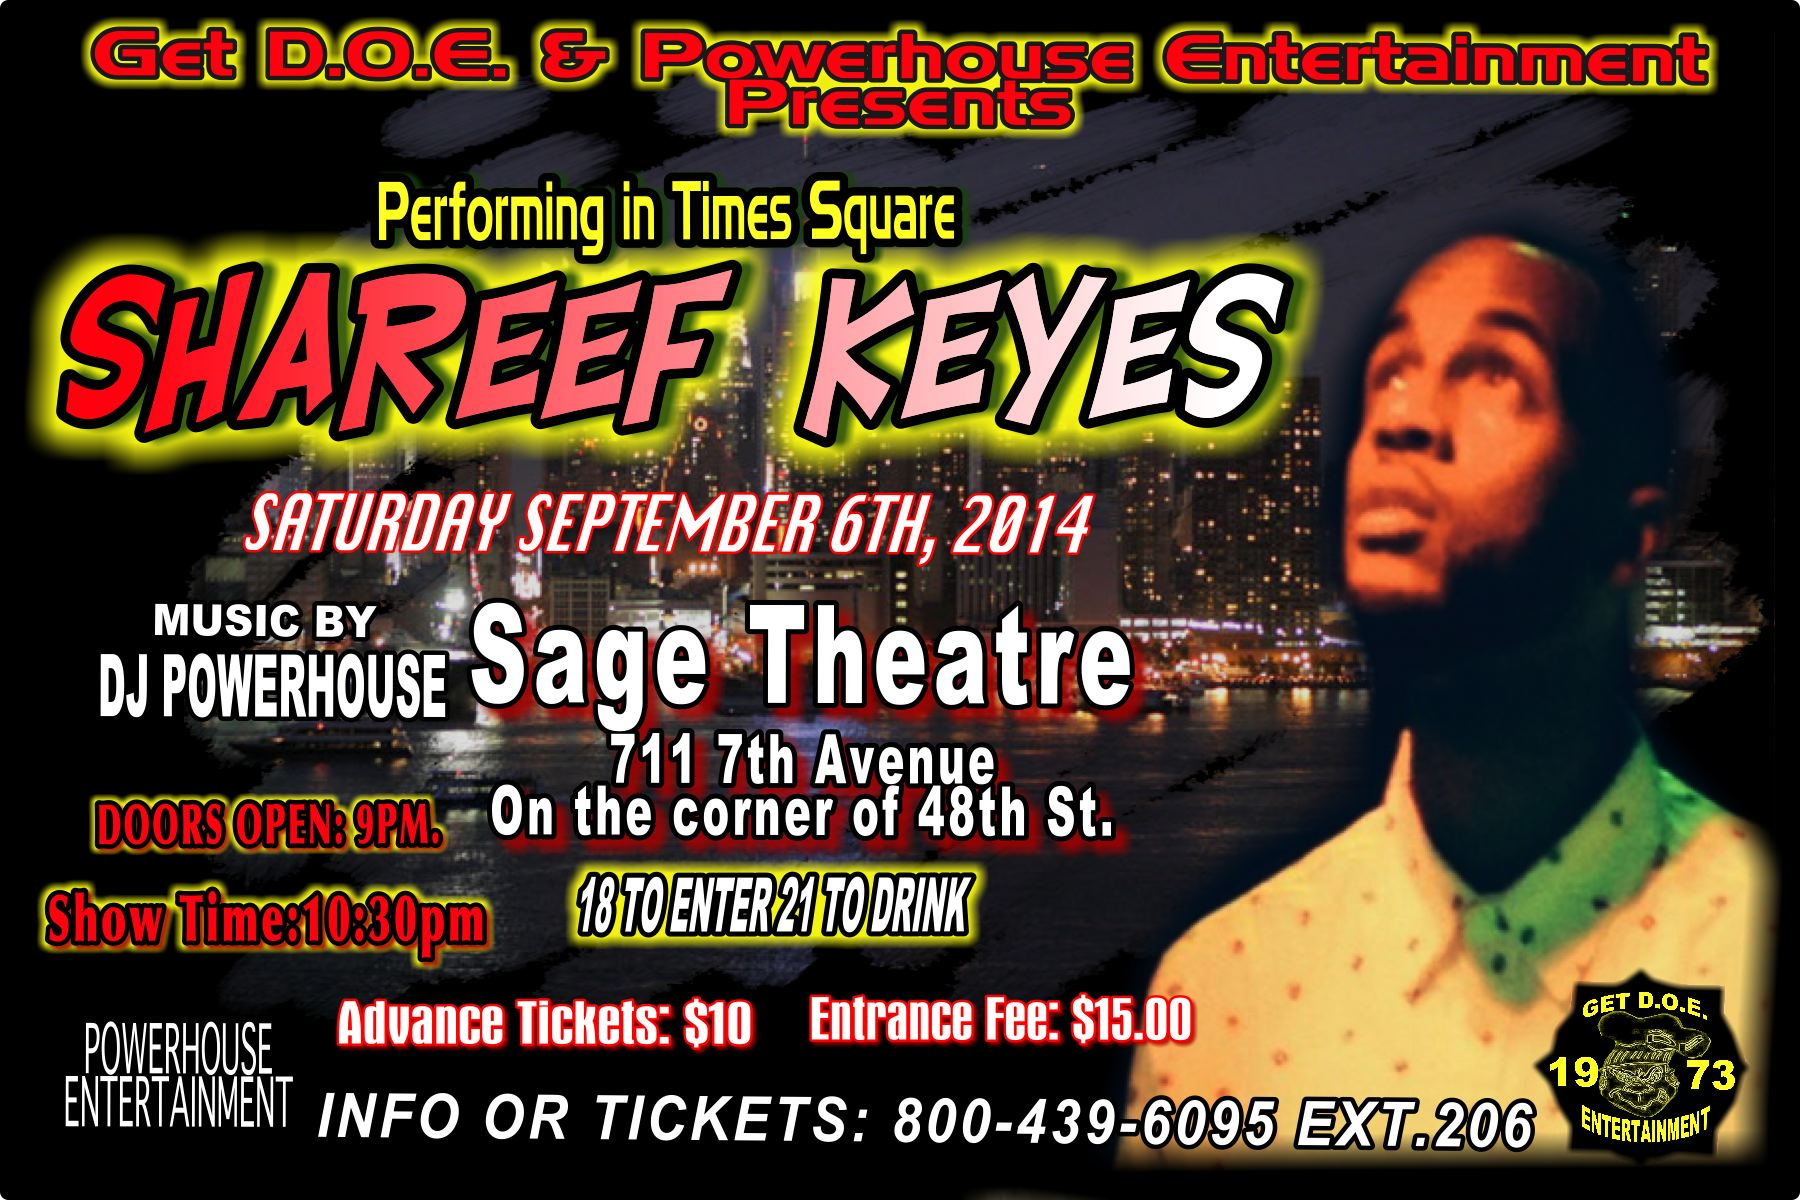 COME OUT TO MY SHOW THIS SATURDAY NIGHT!!!  IT WILL BE A VERY FUNKAFIED EXPERIENECE